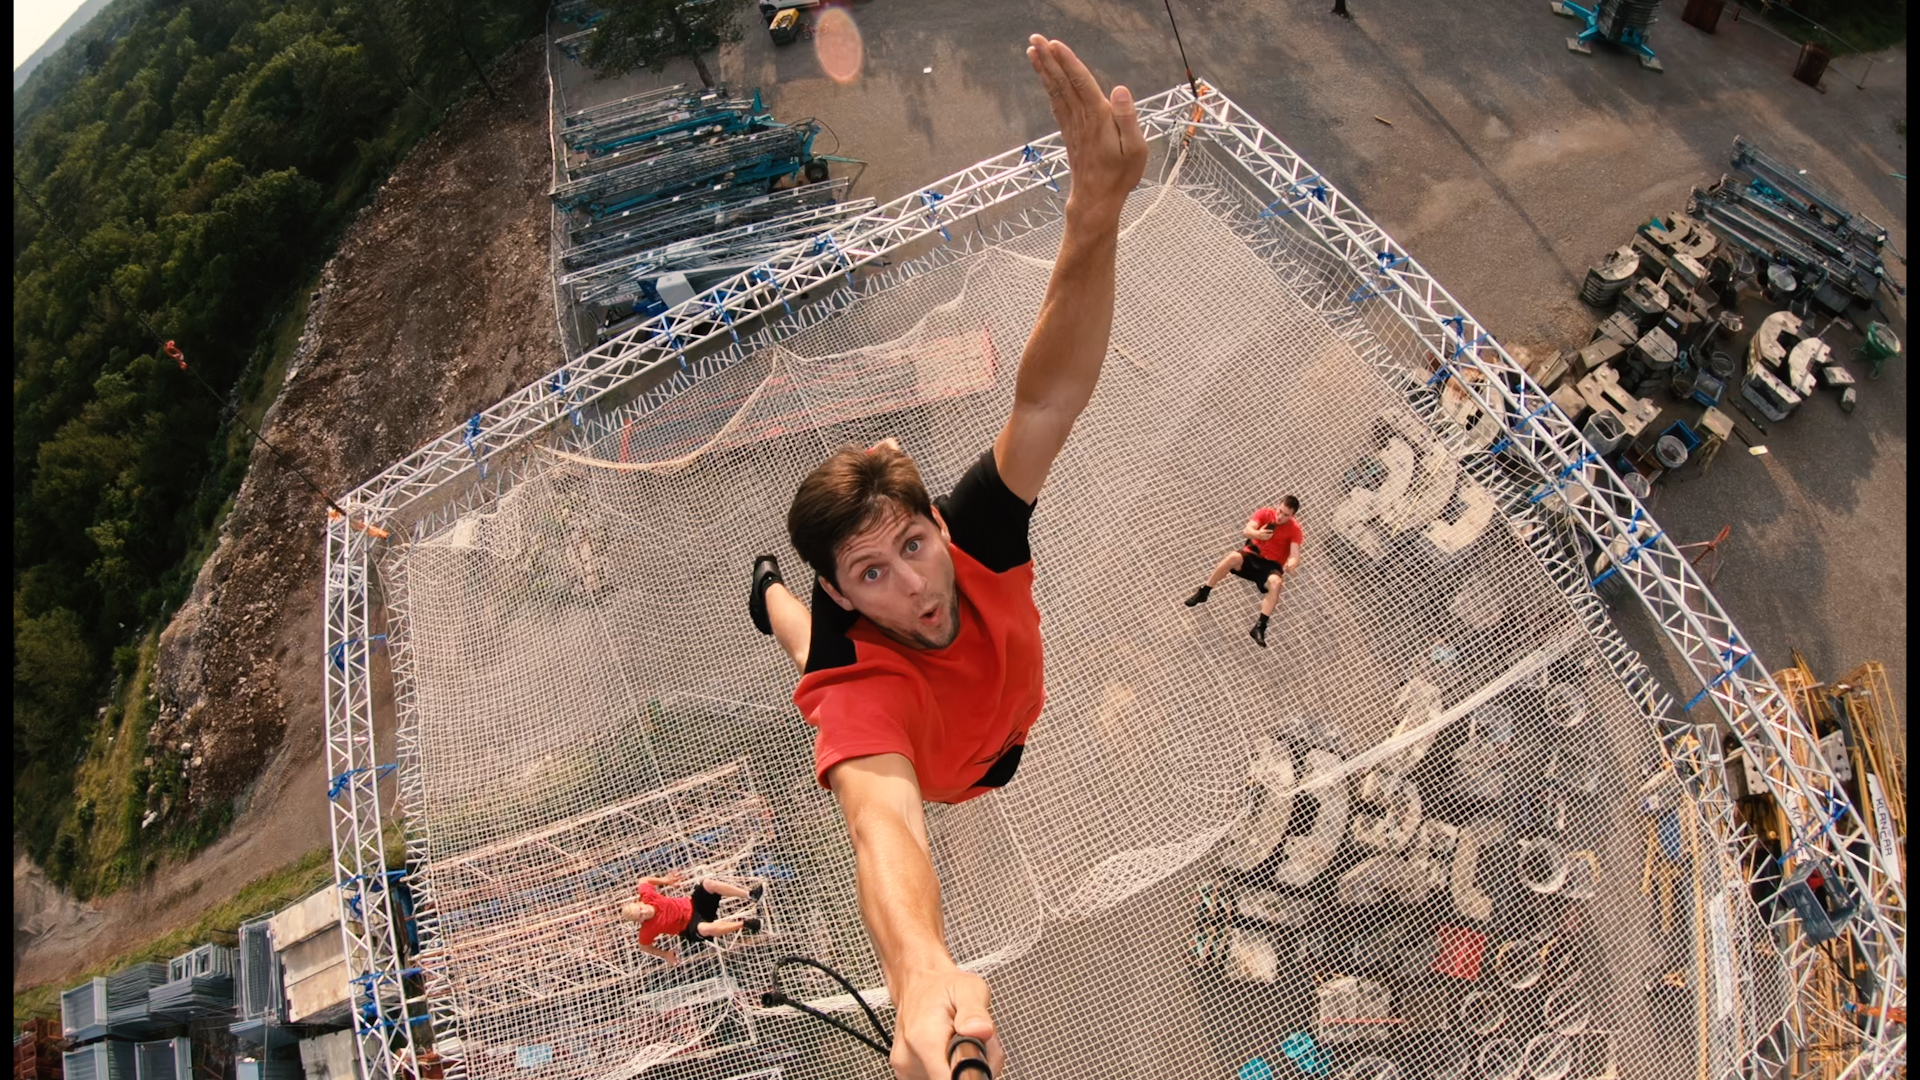 Acrobatic daredevils perform on world's largest trampoline